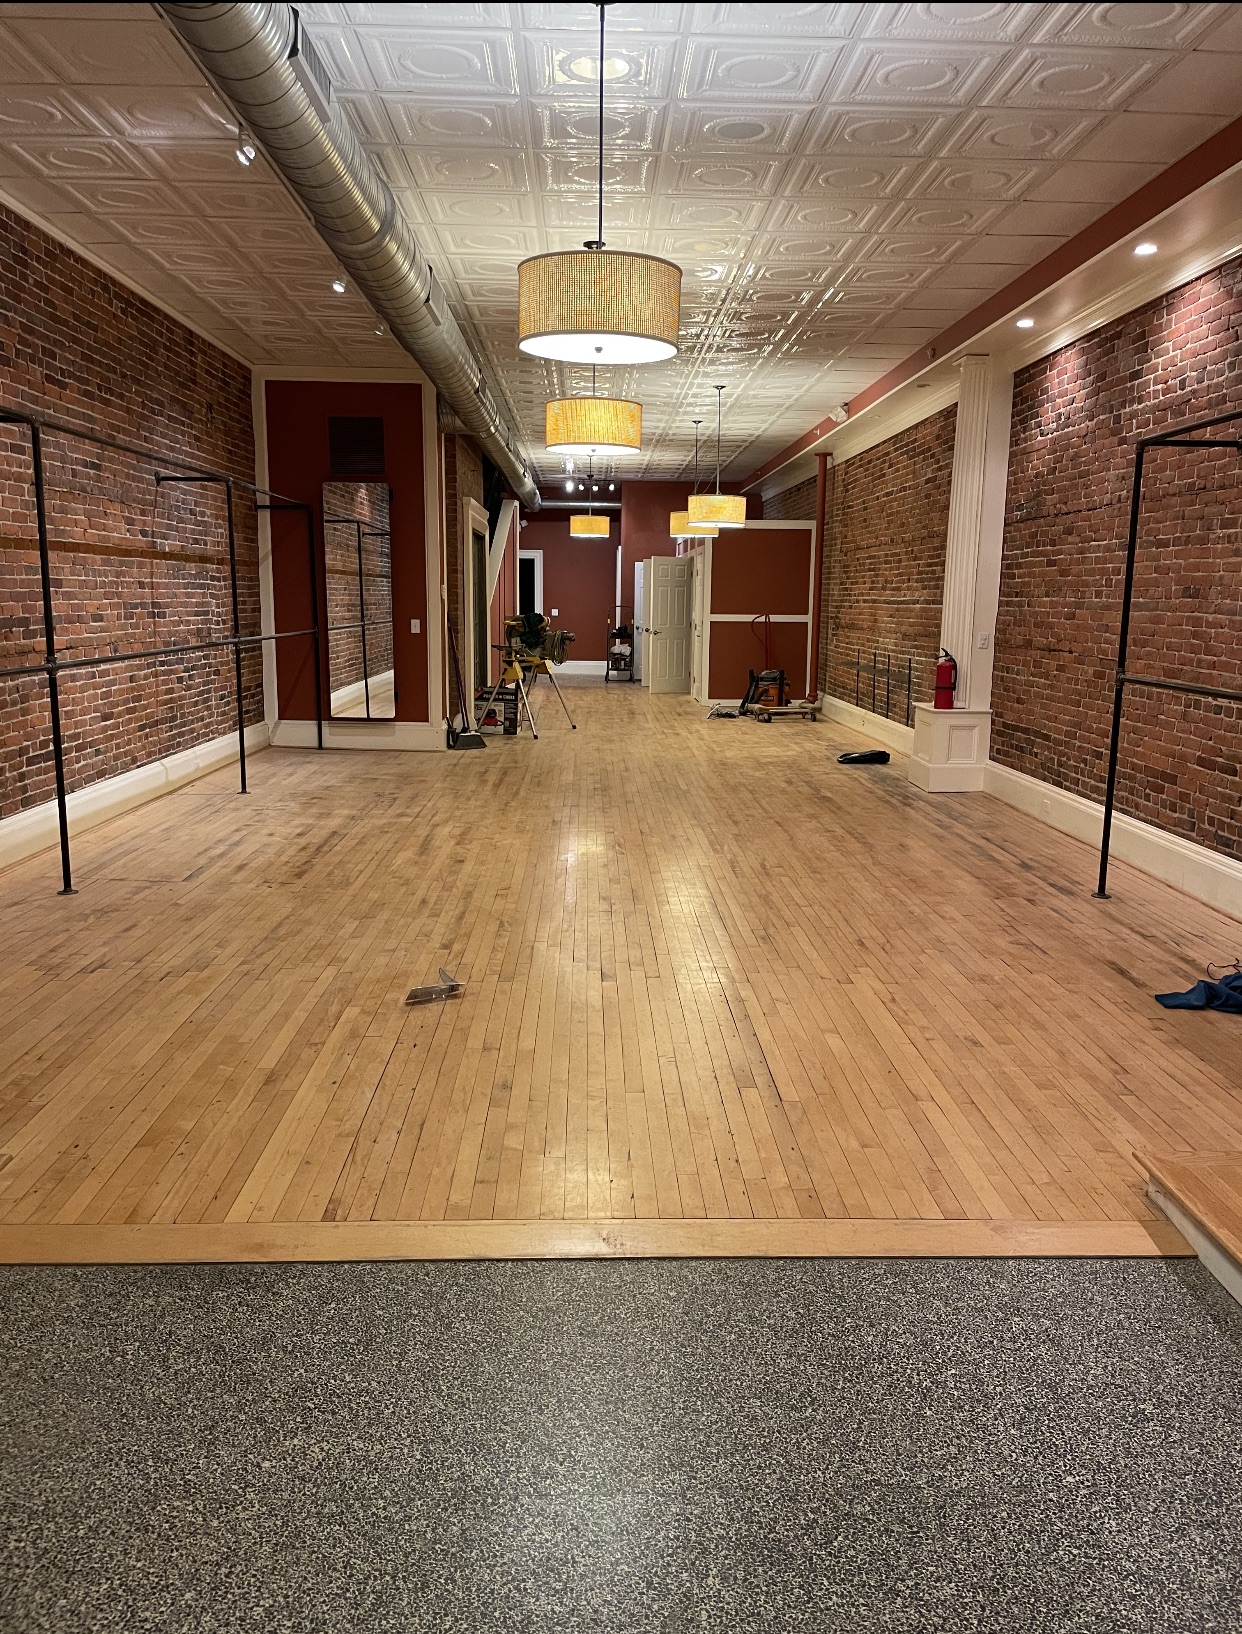 A long room with a wood floor featuring a white tiled ceiling, brick walls on the right, and burgundy painted walls on the left and back sides.